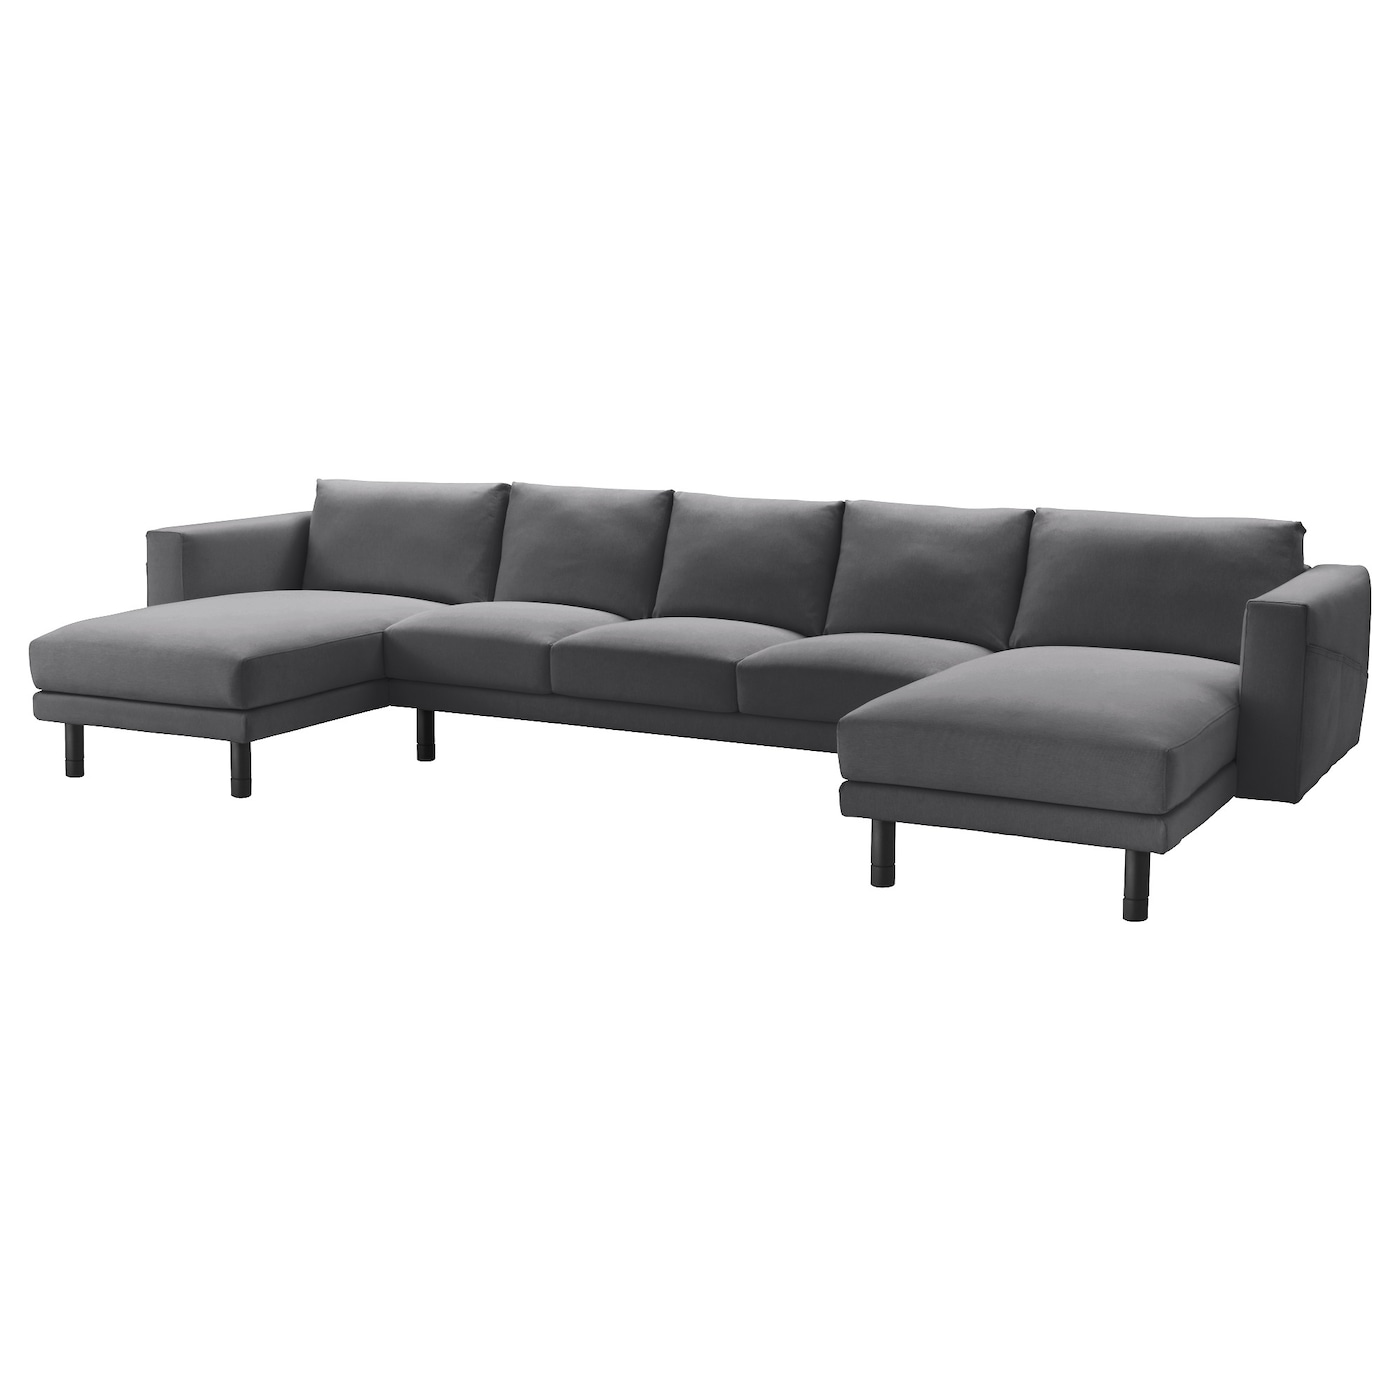 norsborg 3 seat sofa with 2 chaise longues finnsta dark grey grey ikea. Black Bedroom Furniture Sets. Home Design Ideas